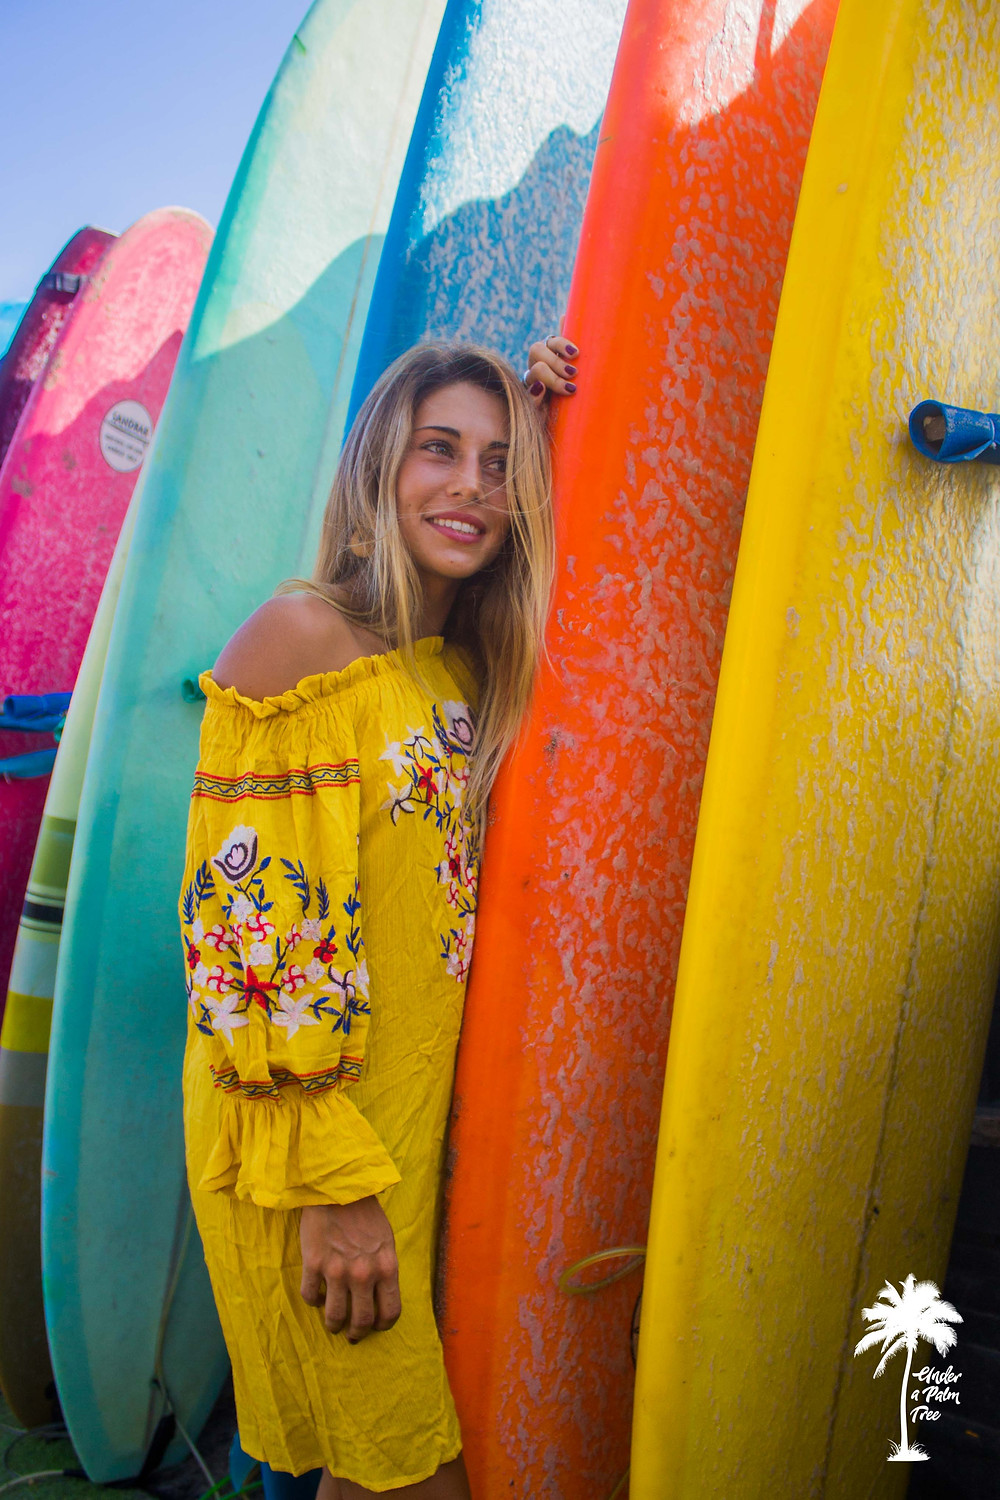 colourful surfer board yellow dress model photoshoot